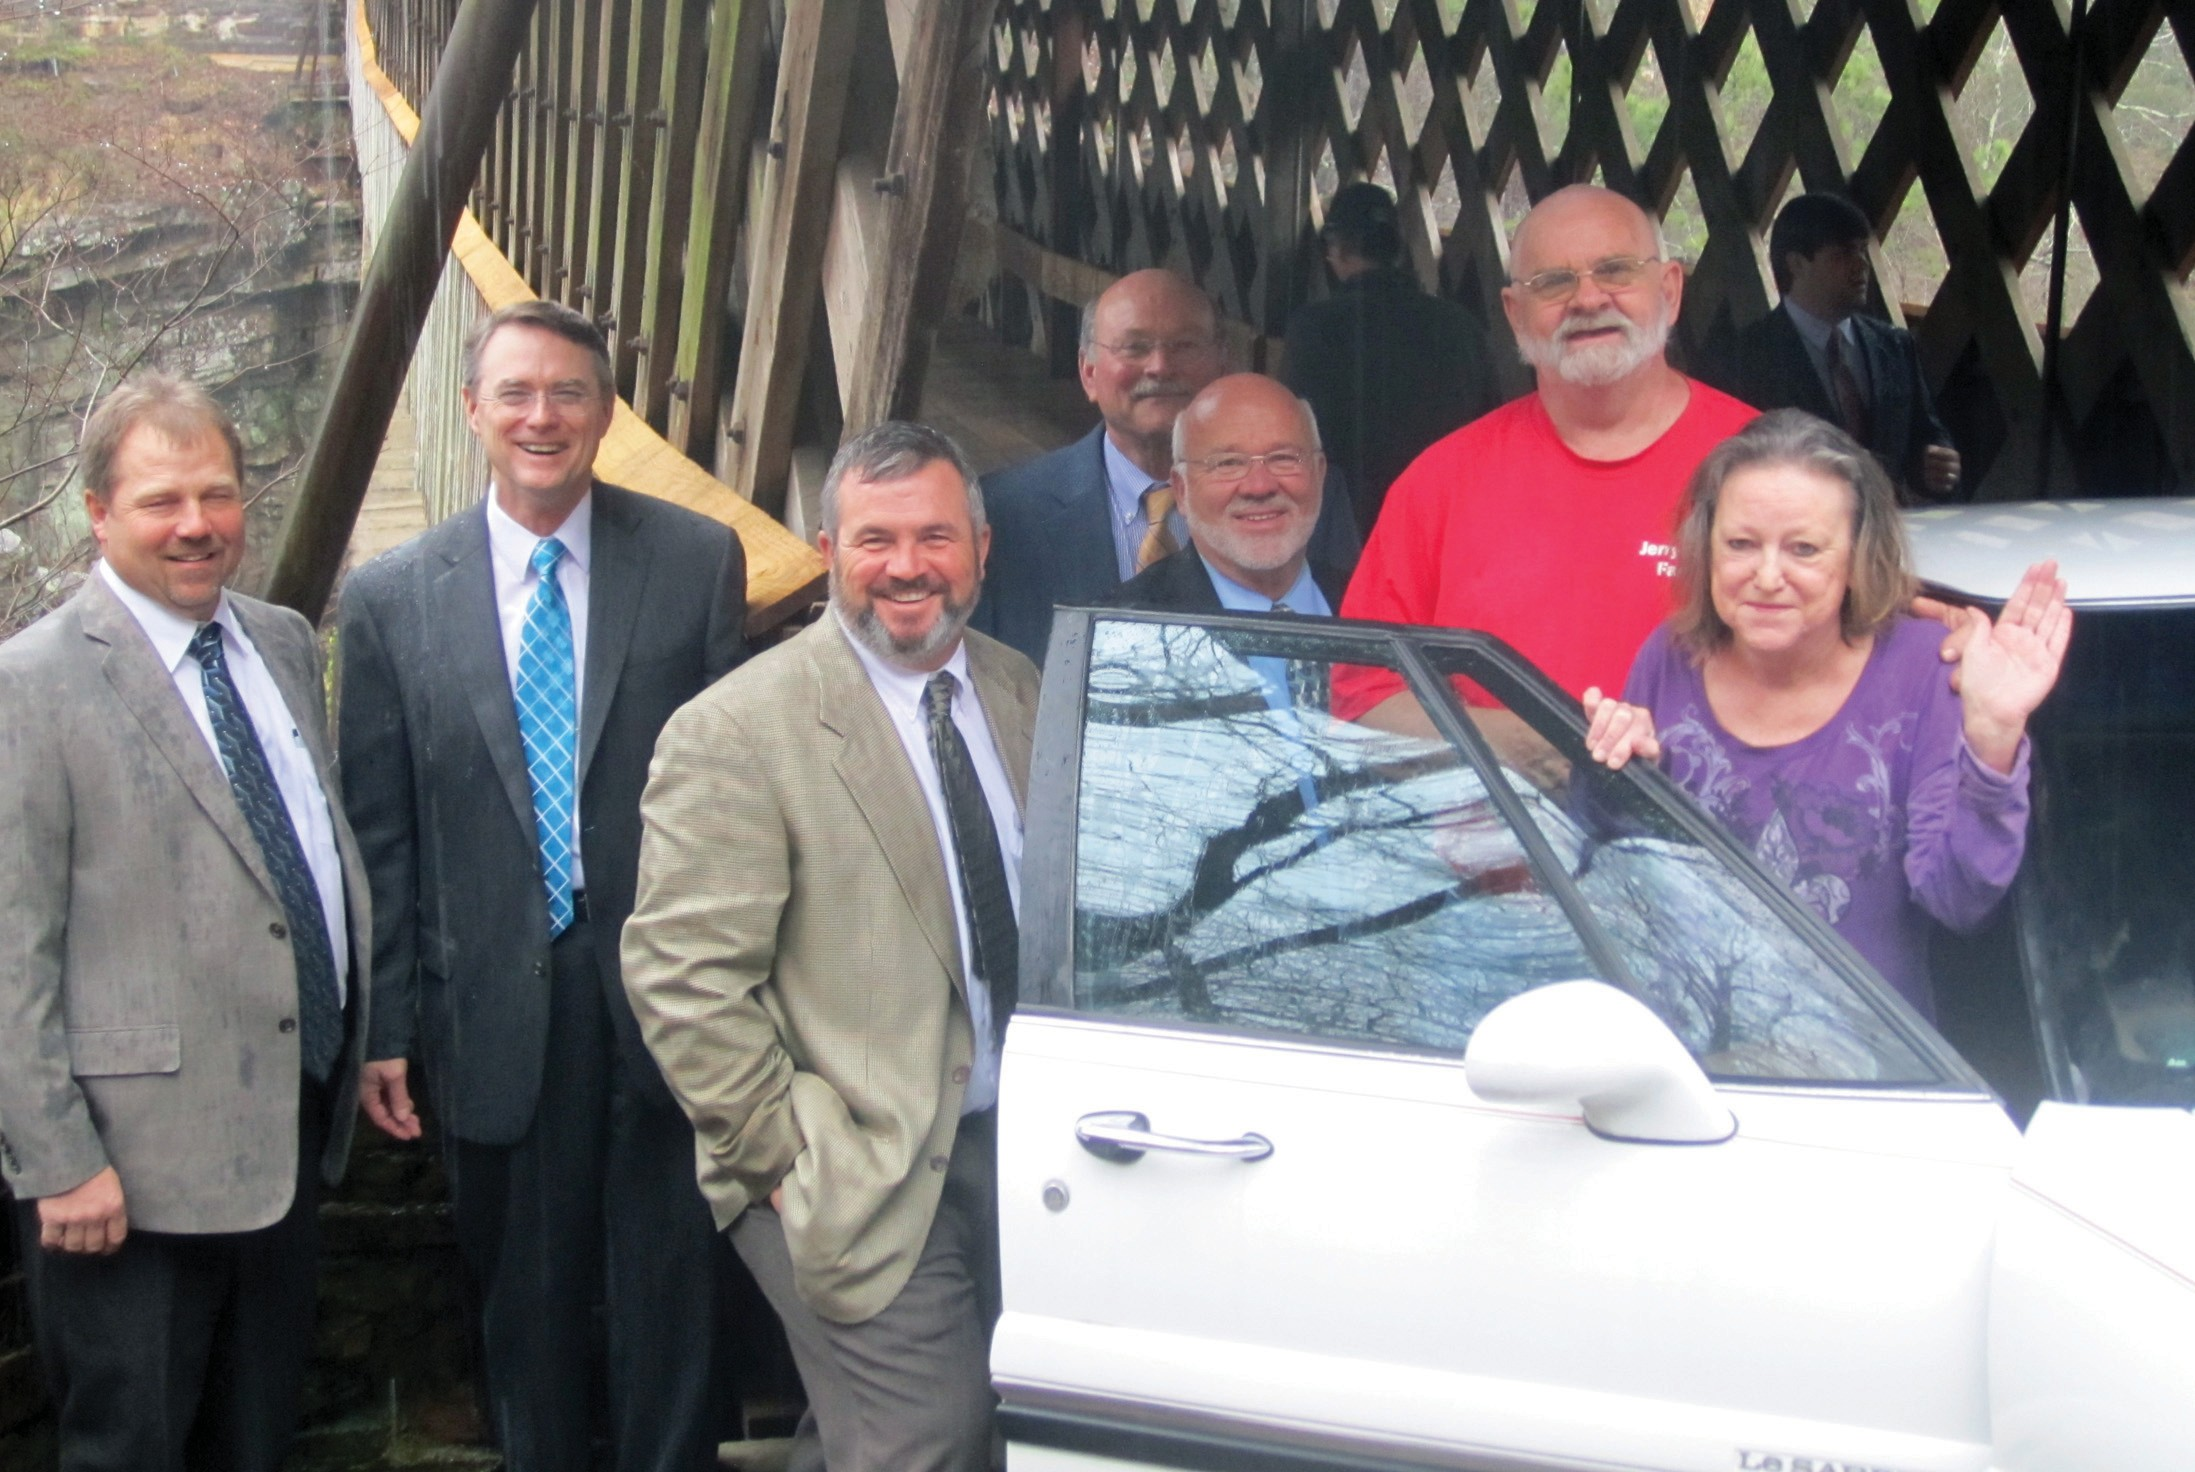 The county commission Monday removed barricades at Horton Mill Covered bridge, opening it to vehicles for the first time since 2009 and signaling the completion of a nearly four-year process of renovating the county's three signature covered bridges. From left, Commissioner Dean Calvert, Probate Judge/Commission Chairman Chris Green, Commissioner Allen Armstrong, Commissioner Carthal Self, Commissioner Gary Stricklin, and Jerry and Jean Gibbs, first citizens to cross the bridge (in a 1999 Buick LeSabre) after barricades were removed. Mrs. Gibbs's parents, Bertha and William Claude Murphree Sr., were the first to cross the bridge at its original opening in 1932. The drove across in a wagon, their mode of transportation at the time. – Ron Gholson